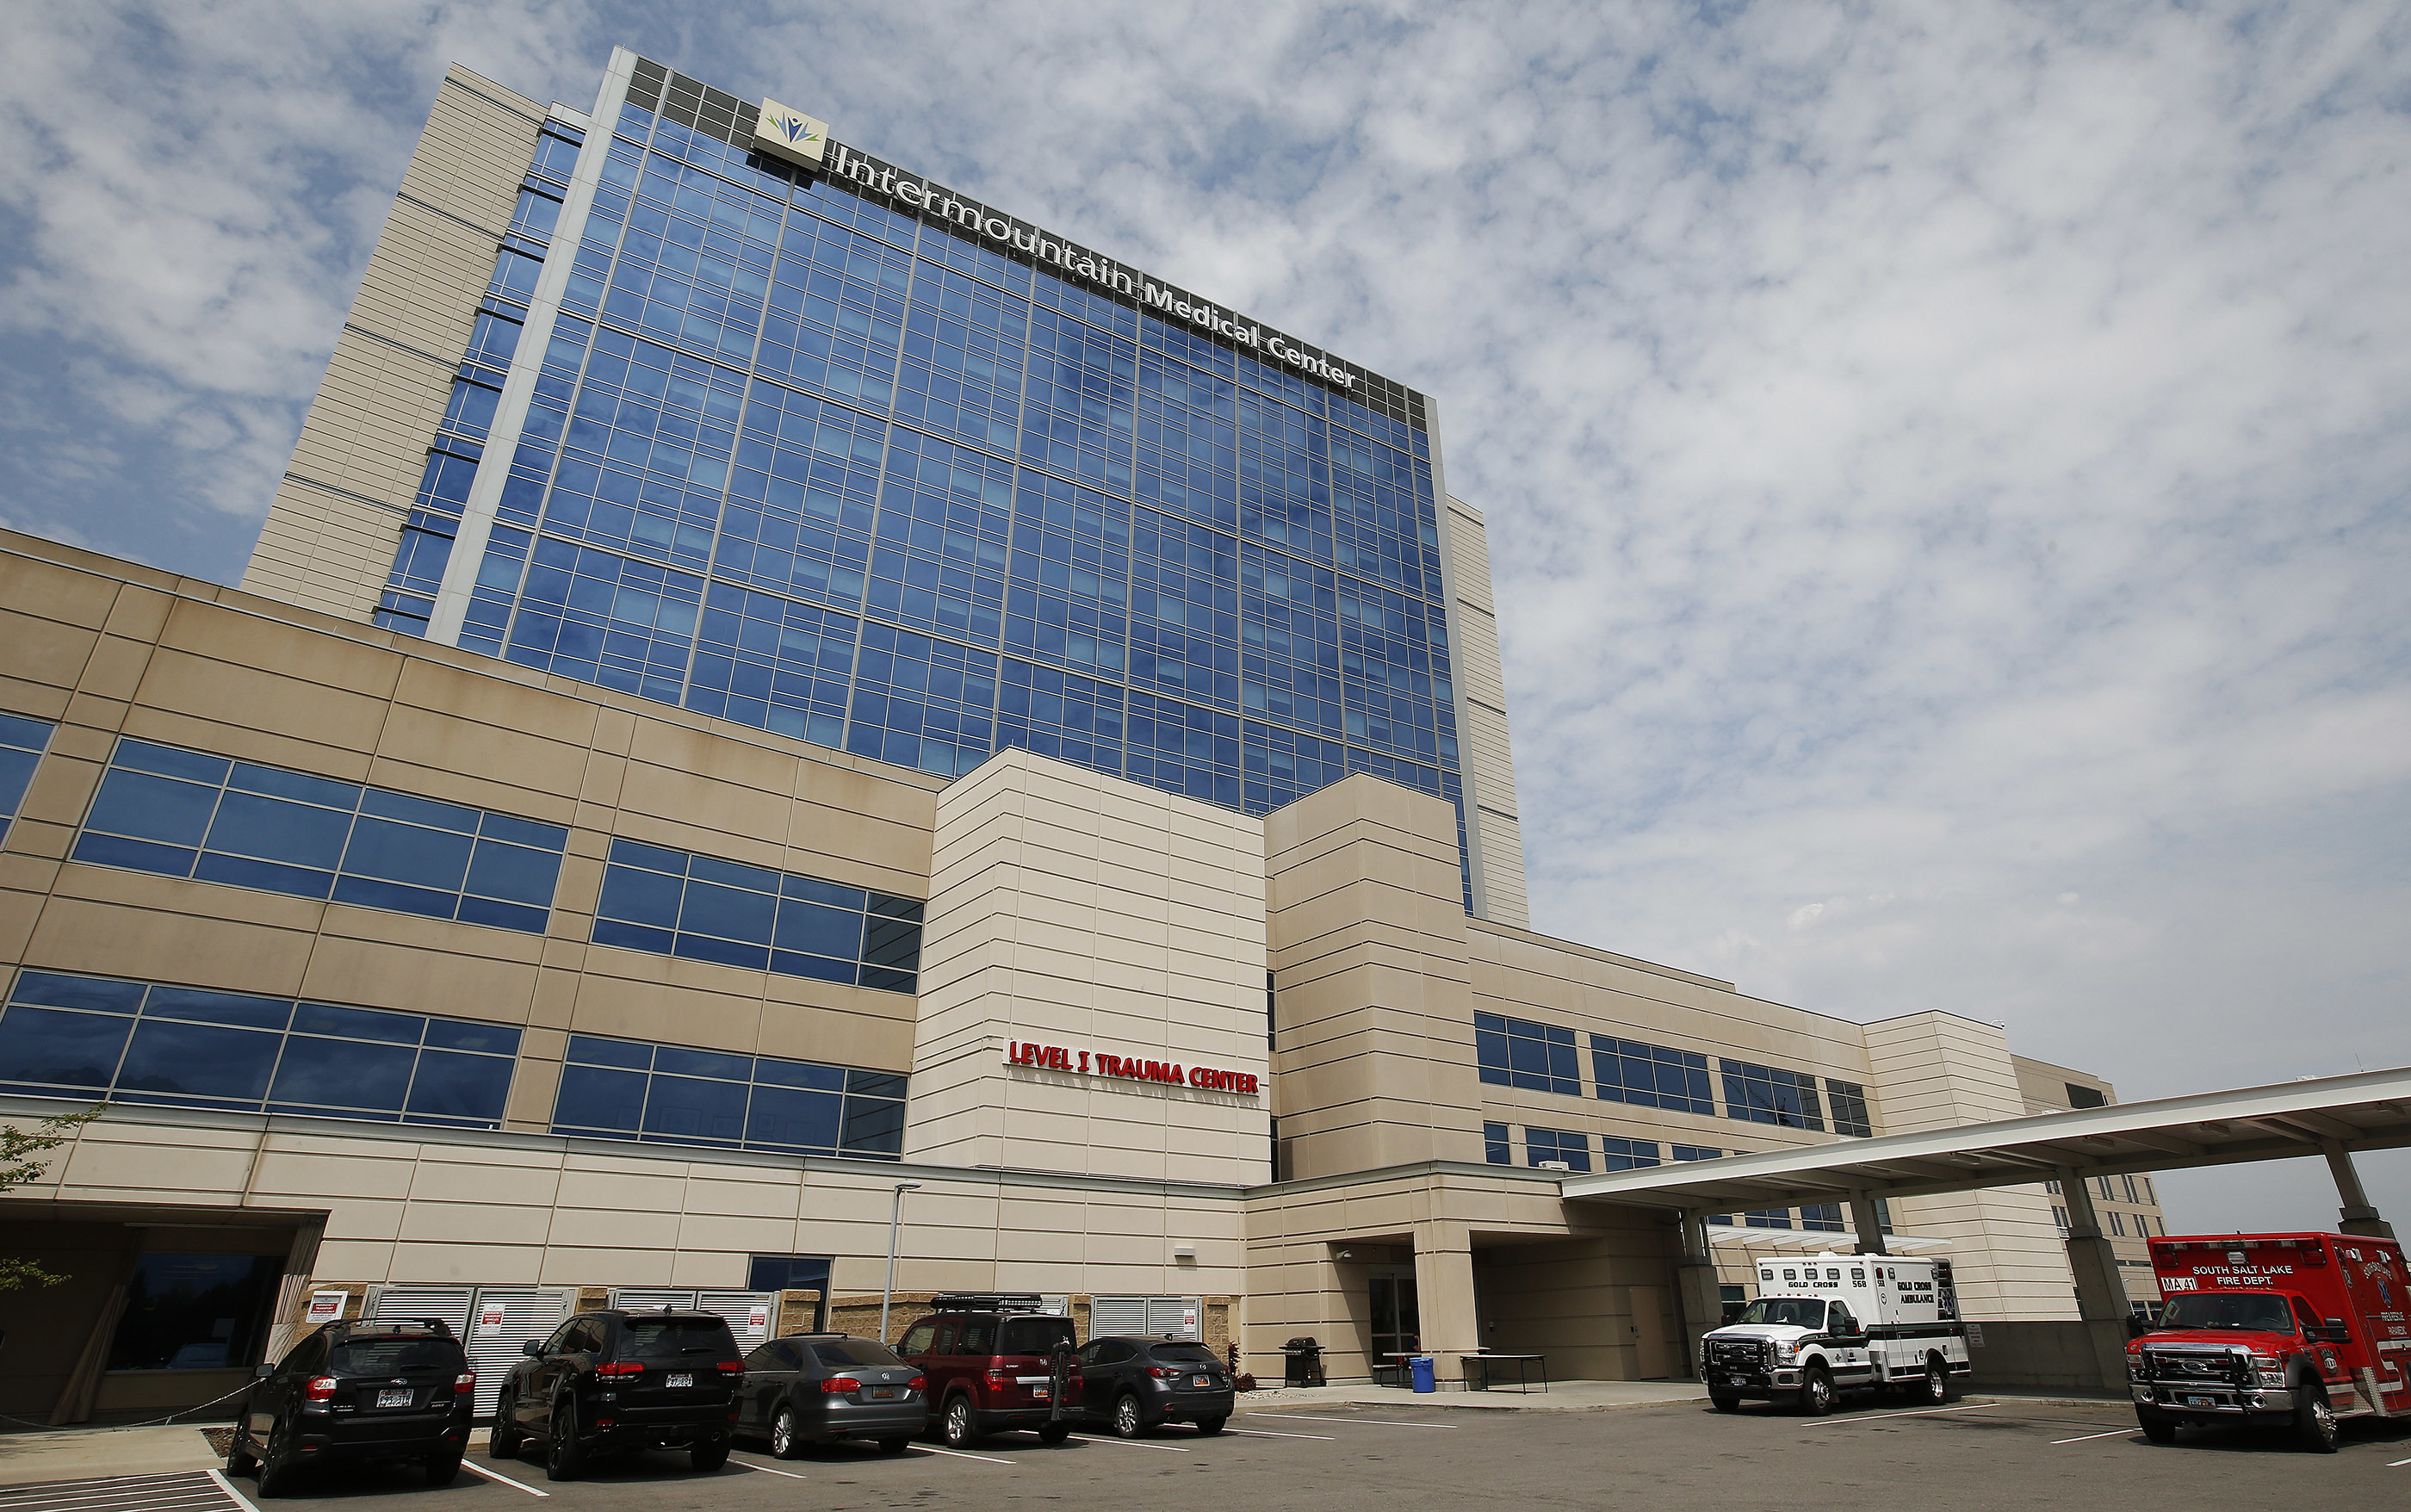 Intermountain Medical Center in Murray is pictured on Tuesday, Aug. 8, 2017. The Huntsman Cancer Institute and Intermountain Medical Center are both included in the U.S. News' new hospital rankings.